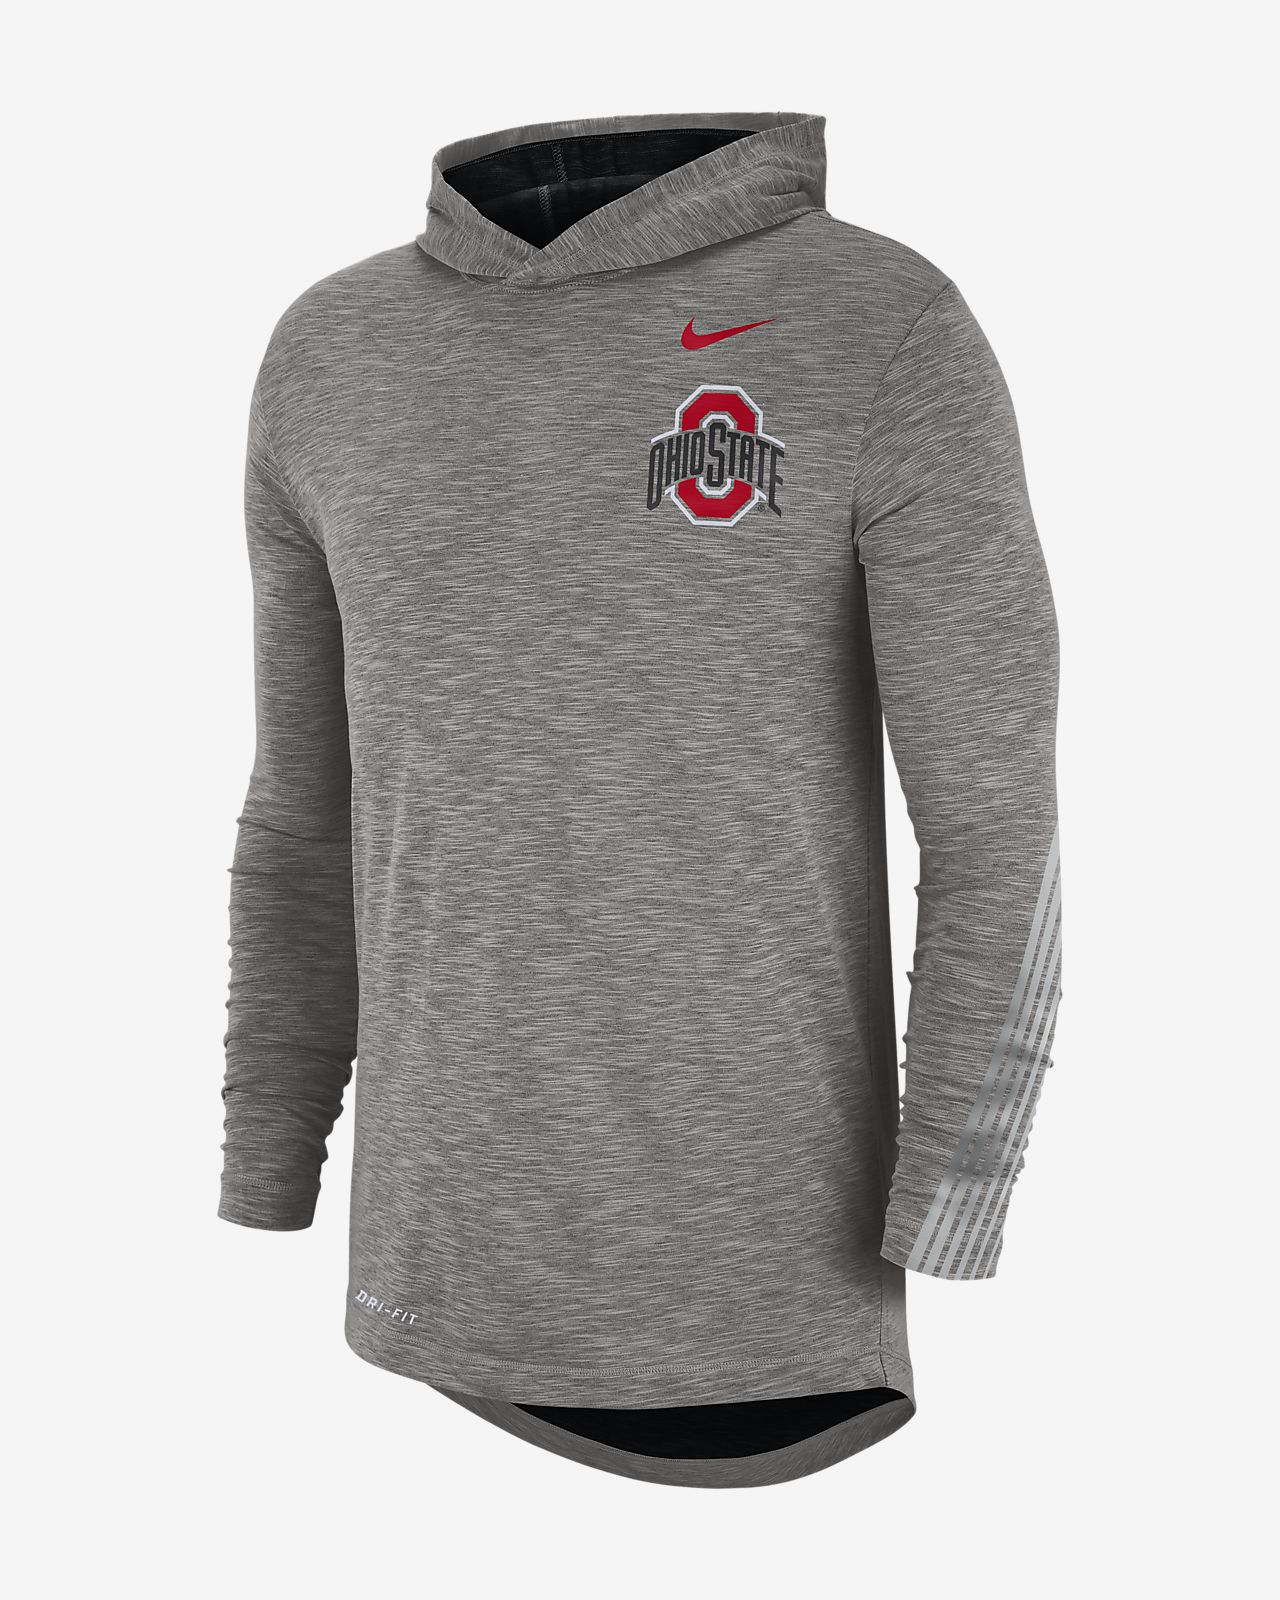 Nike College (Ohio State) Men's Long-Sleeve Hooded T-Shirt